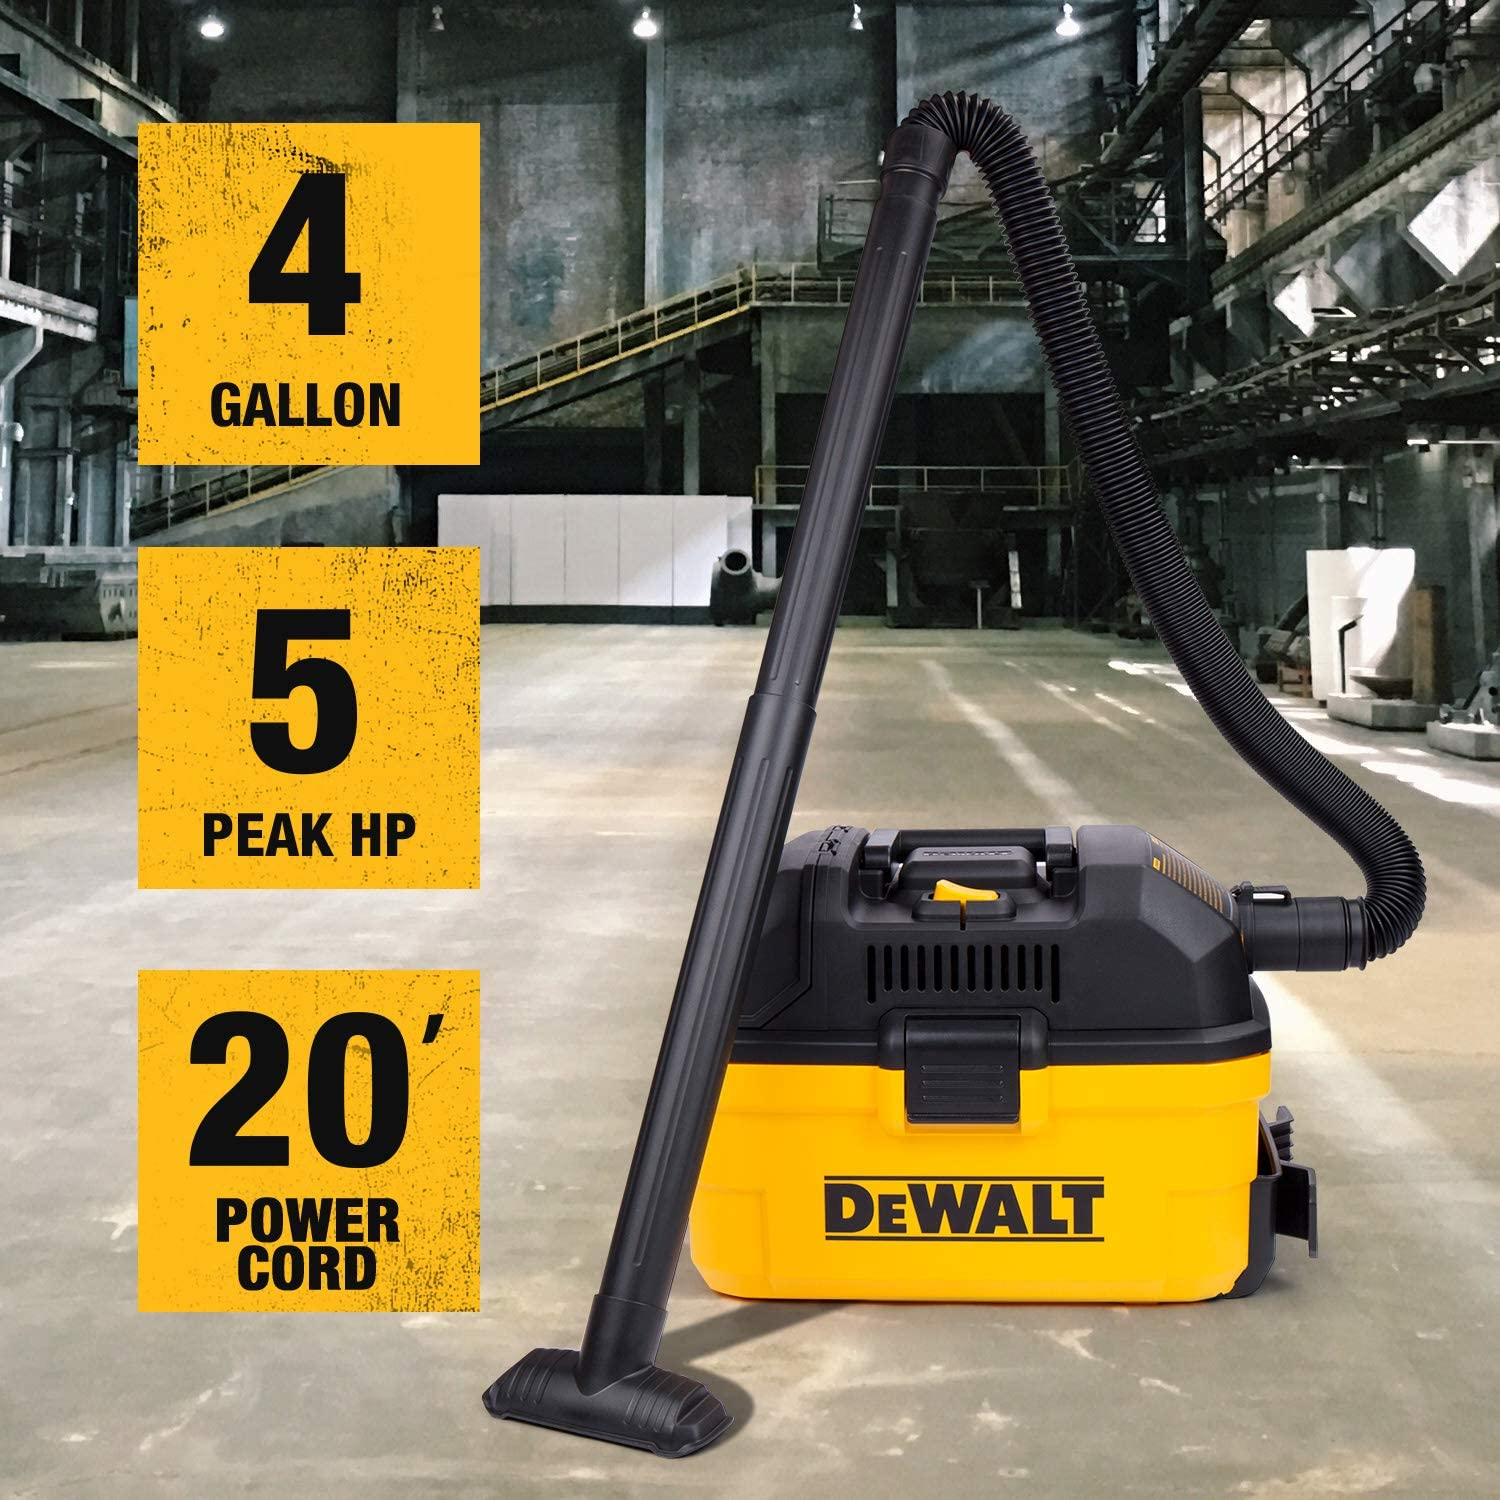 DeWALT Portable 4 Gallon Wet//Dry Vaccum Yellow /& Workshop Wet//Dry Vacs Vacuum Accessories WS17854A 1-7//8-Inch Shop Vacuum Attachment Kit for Use with A Shop Vacuum with Homeowners in Mind